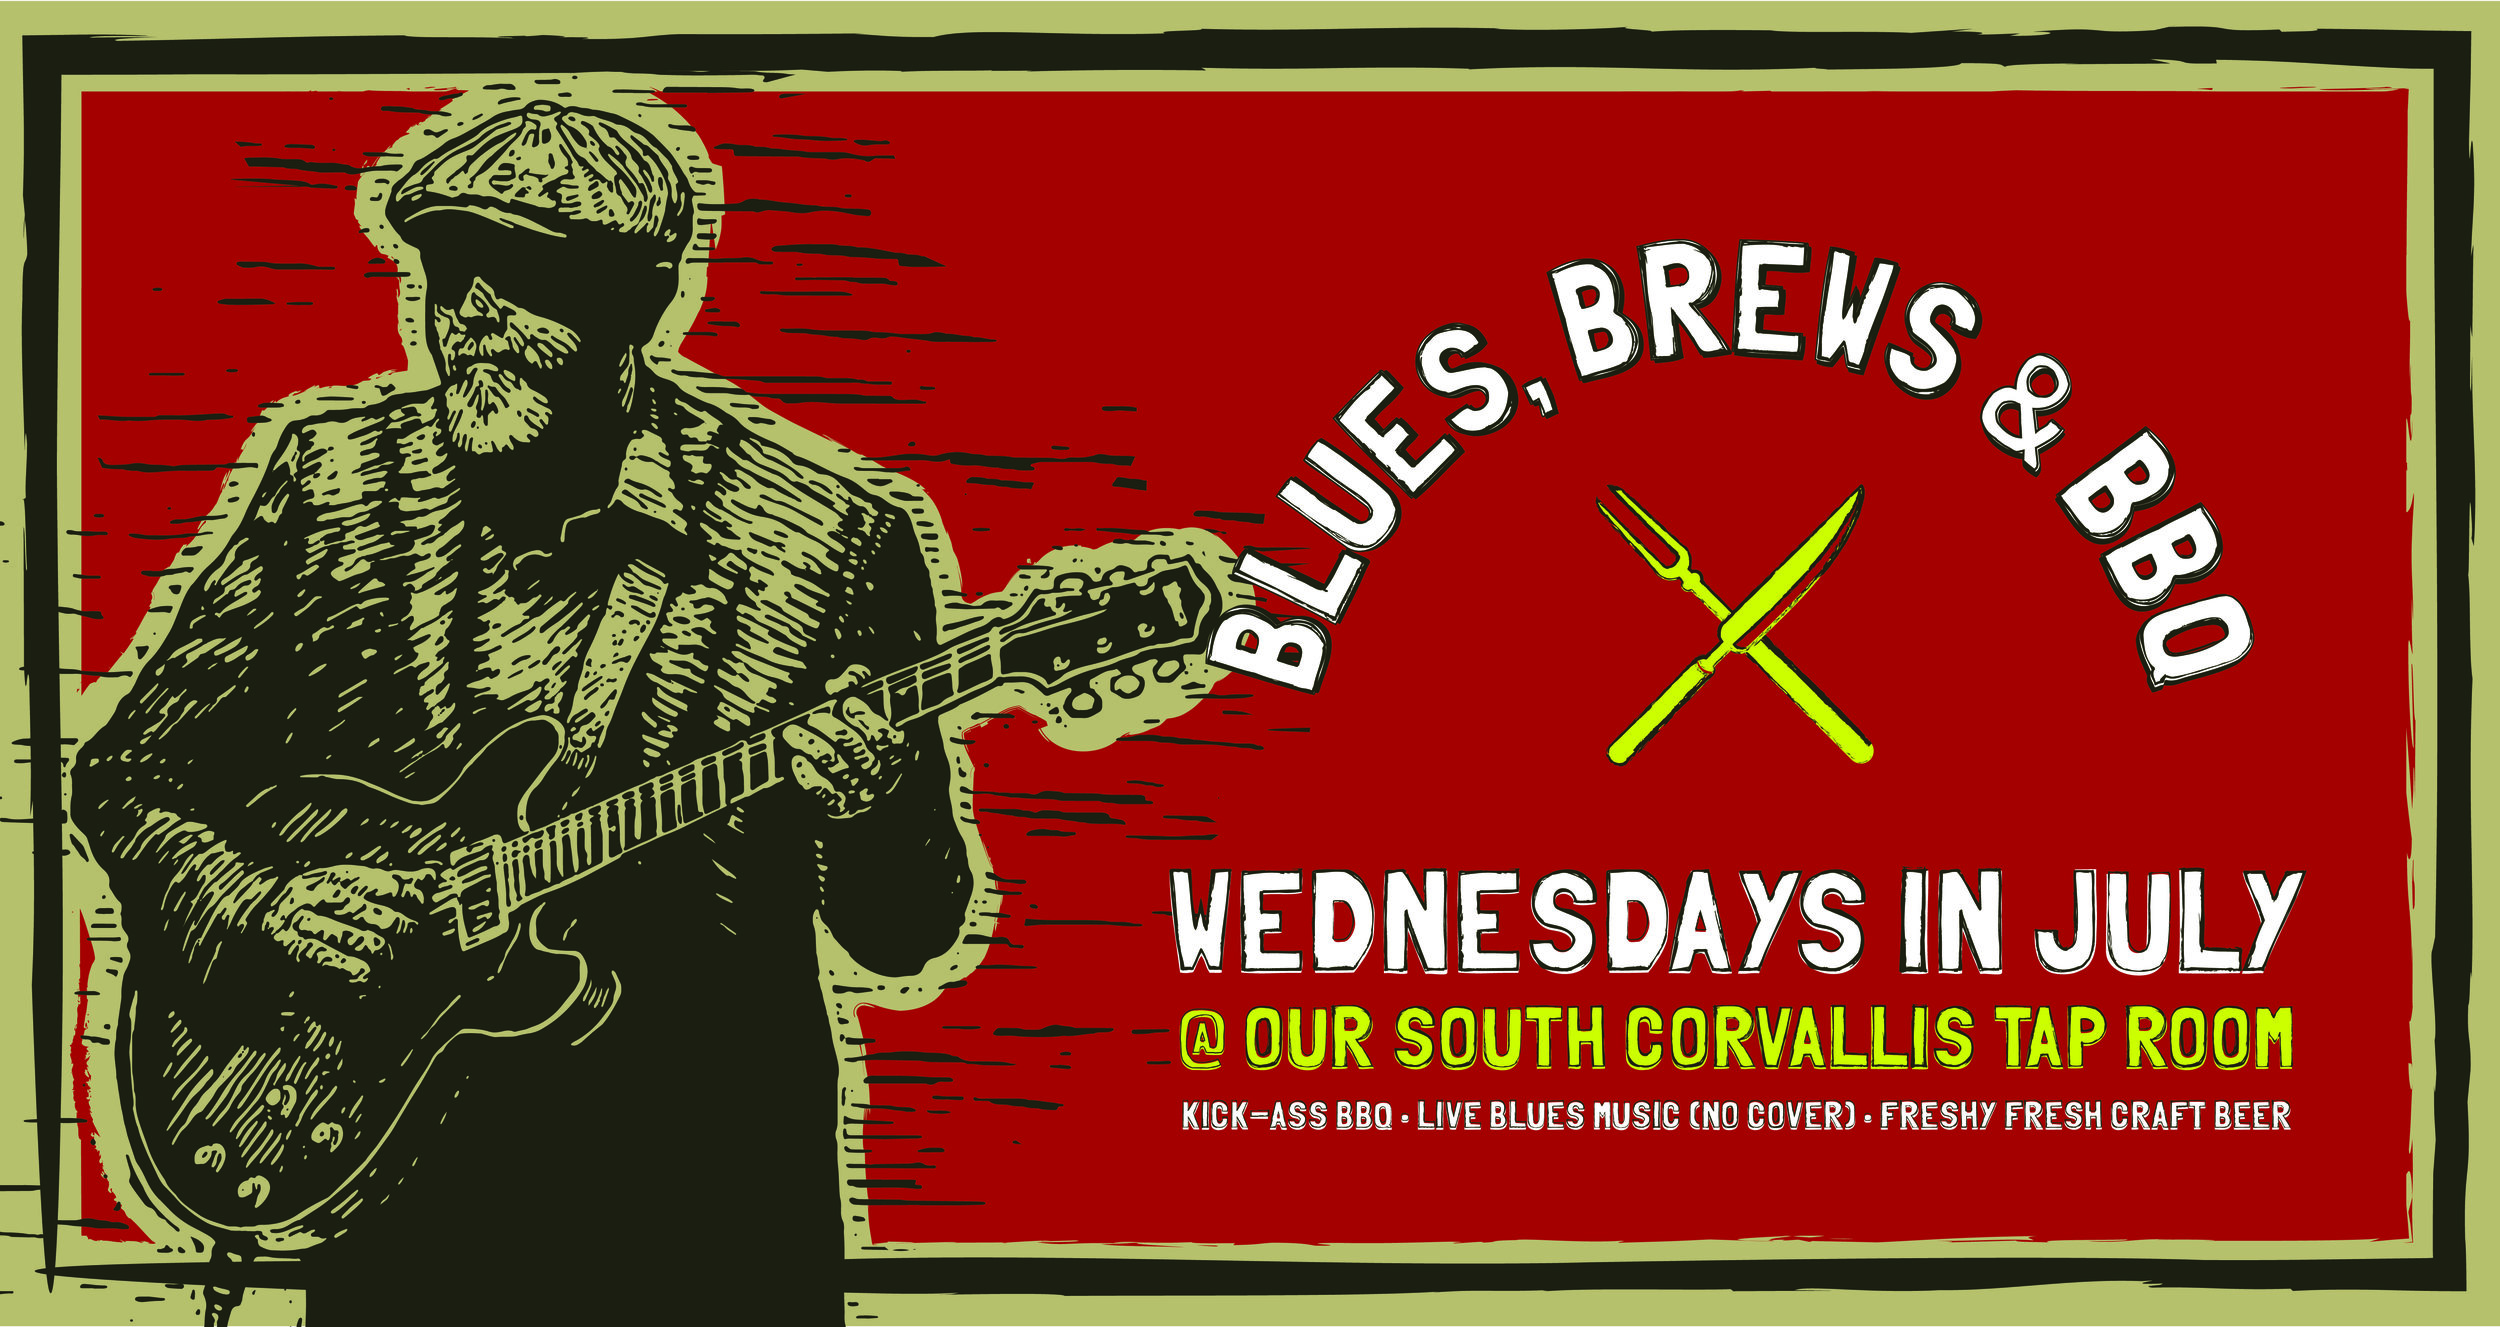 "Join us Wednesdays in July for ""Tunes, Brews & BBQ"" at our Tap Room! Enjoy cover-free blues from local musicians, kick-ass BBQ specials, and freshy fresh beer brewed feet from your seat. This Wednesday we welcome String Theory, and feature a special menu of Santa Maria Tri-Tip and Arugula Salad with Piquinto Beans and Watermelon."